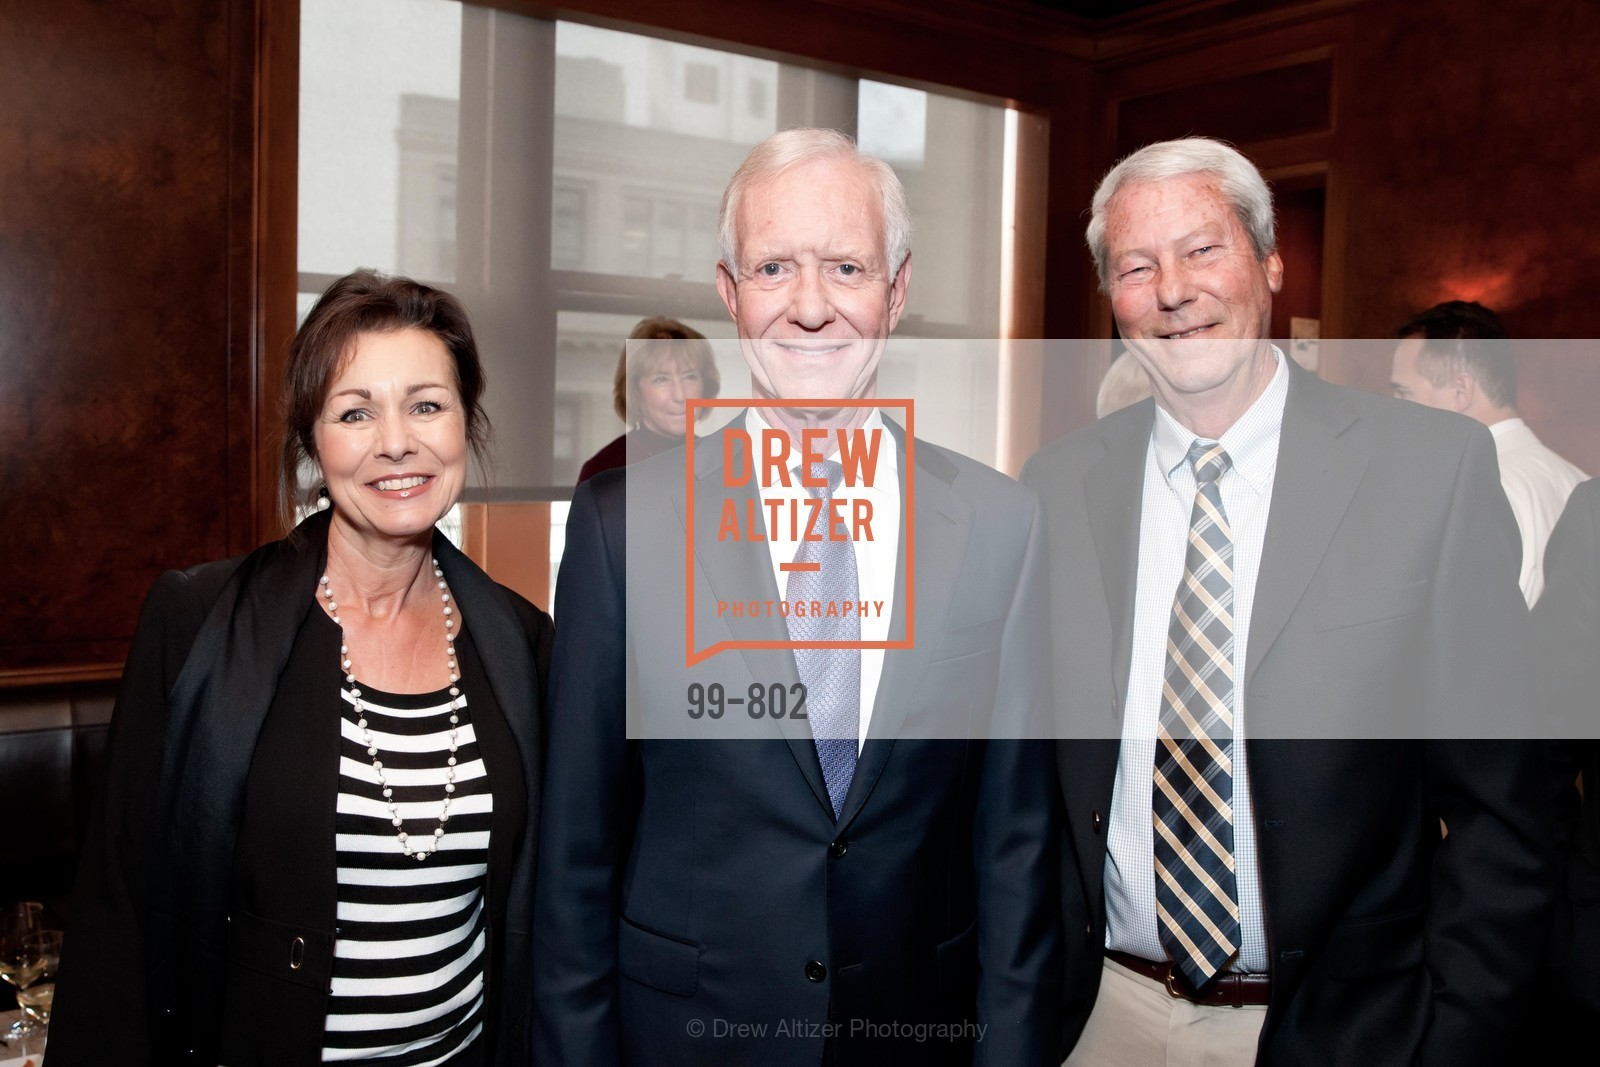 Sally Pierson, Sully Sullenberger, Tom Pierson, MR PORTER Celebrate The San Francisco Issue of The Journal, US, April 23rd, 2015,Drew Altizer, Drew Altizer Photography, full-service agency, private events, San Francisco photographer, photographer california